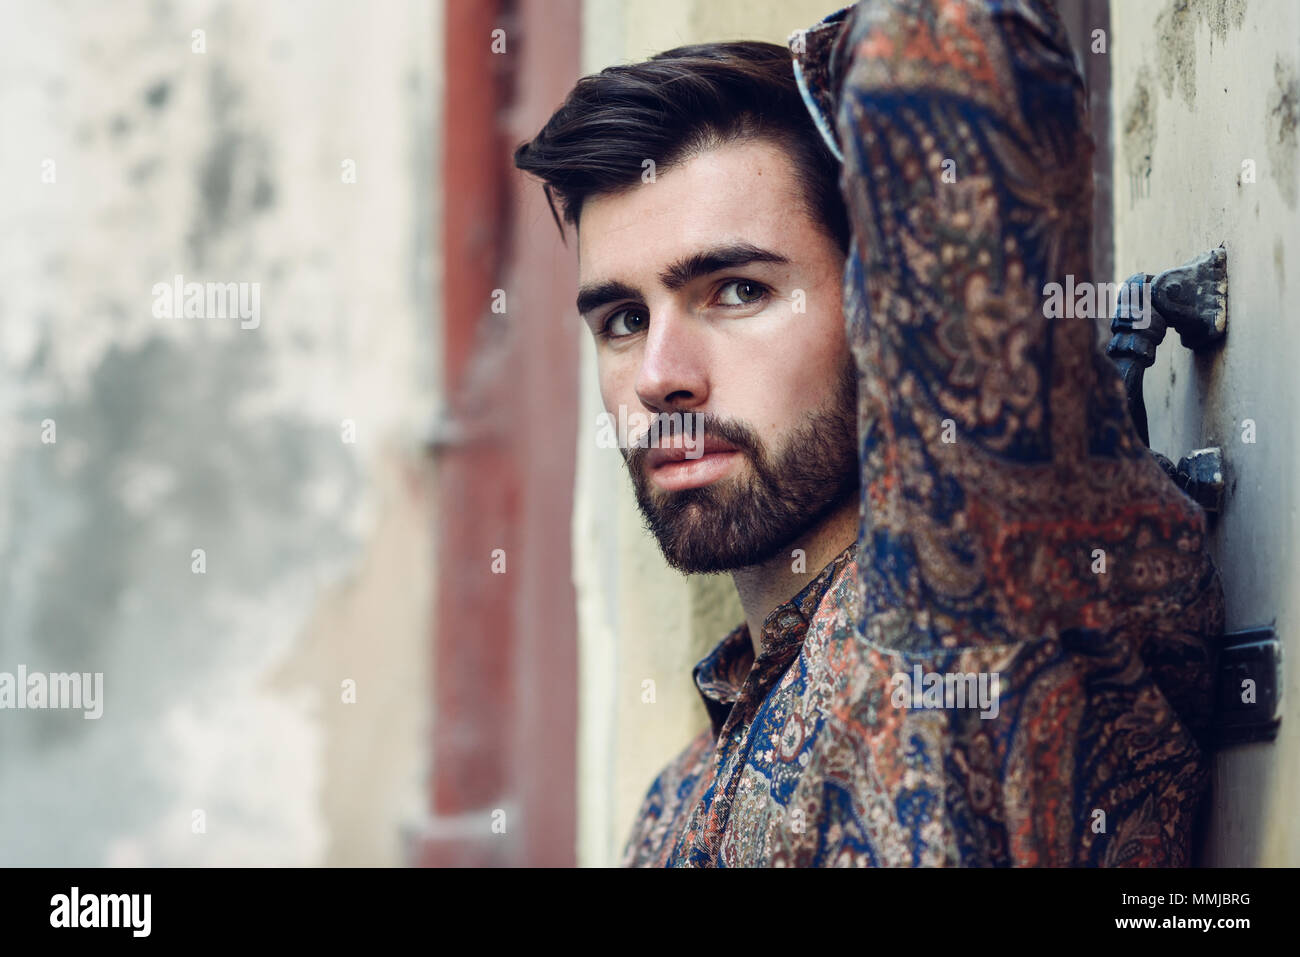 Images Person People Singer Fur Portrait Youth Studio Clothing Modern Outerwear Material Hairstyle Beard Collar Posing Black Hair